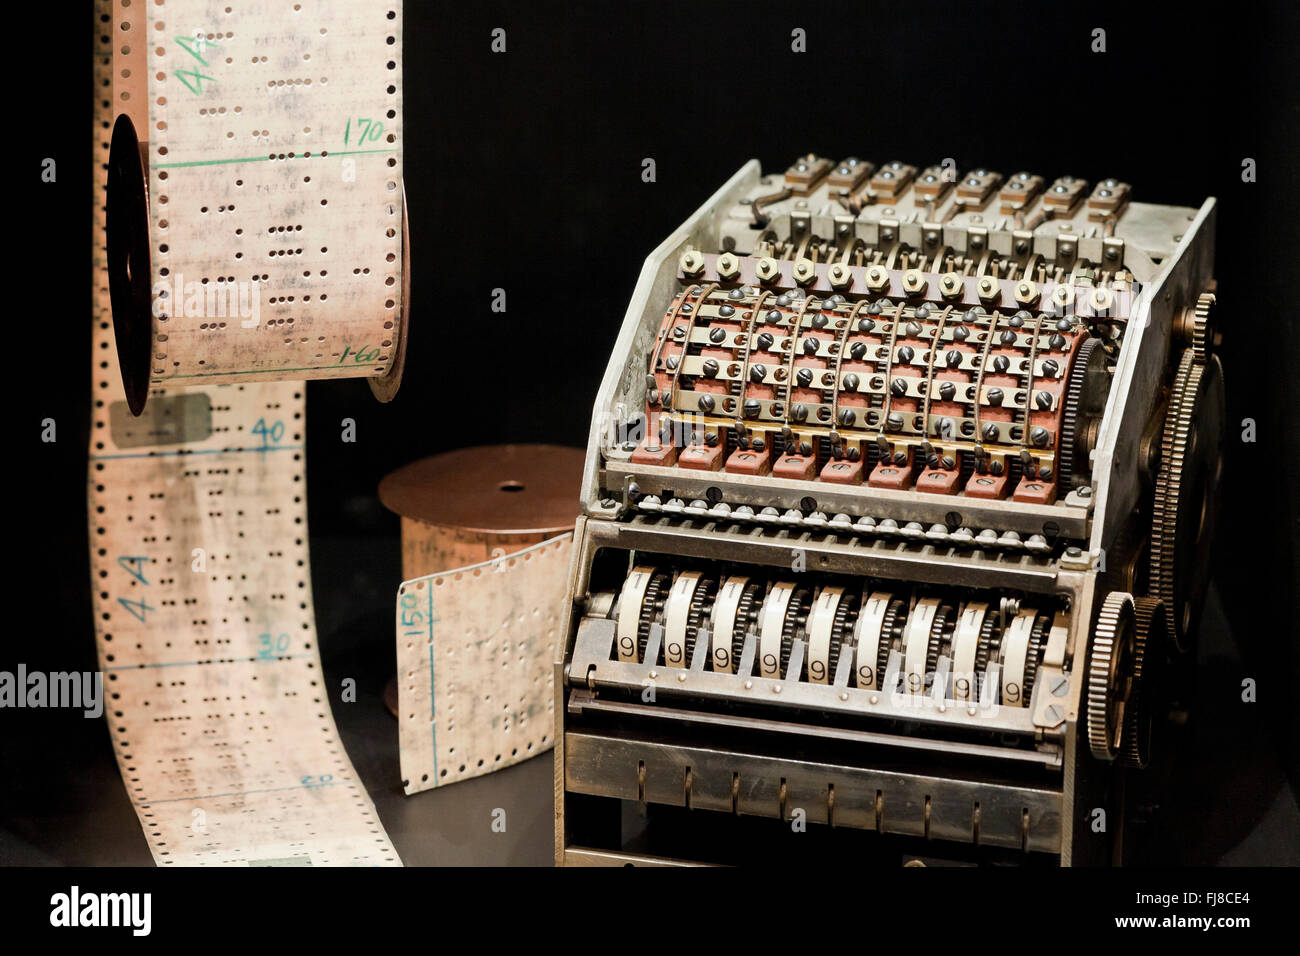 IBM Automatic Sequence Controlled Calculator (Mark I), circa 1944 - US Patent and Trademark Office - USA - Stock Image